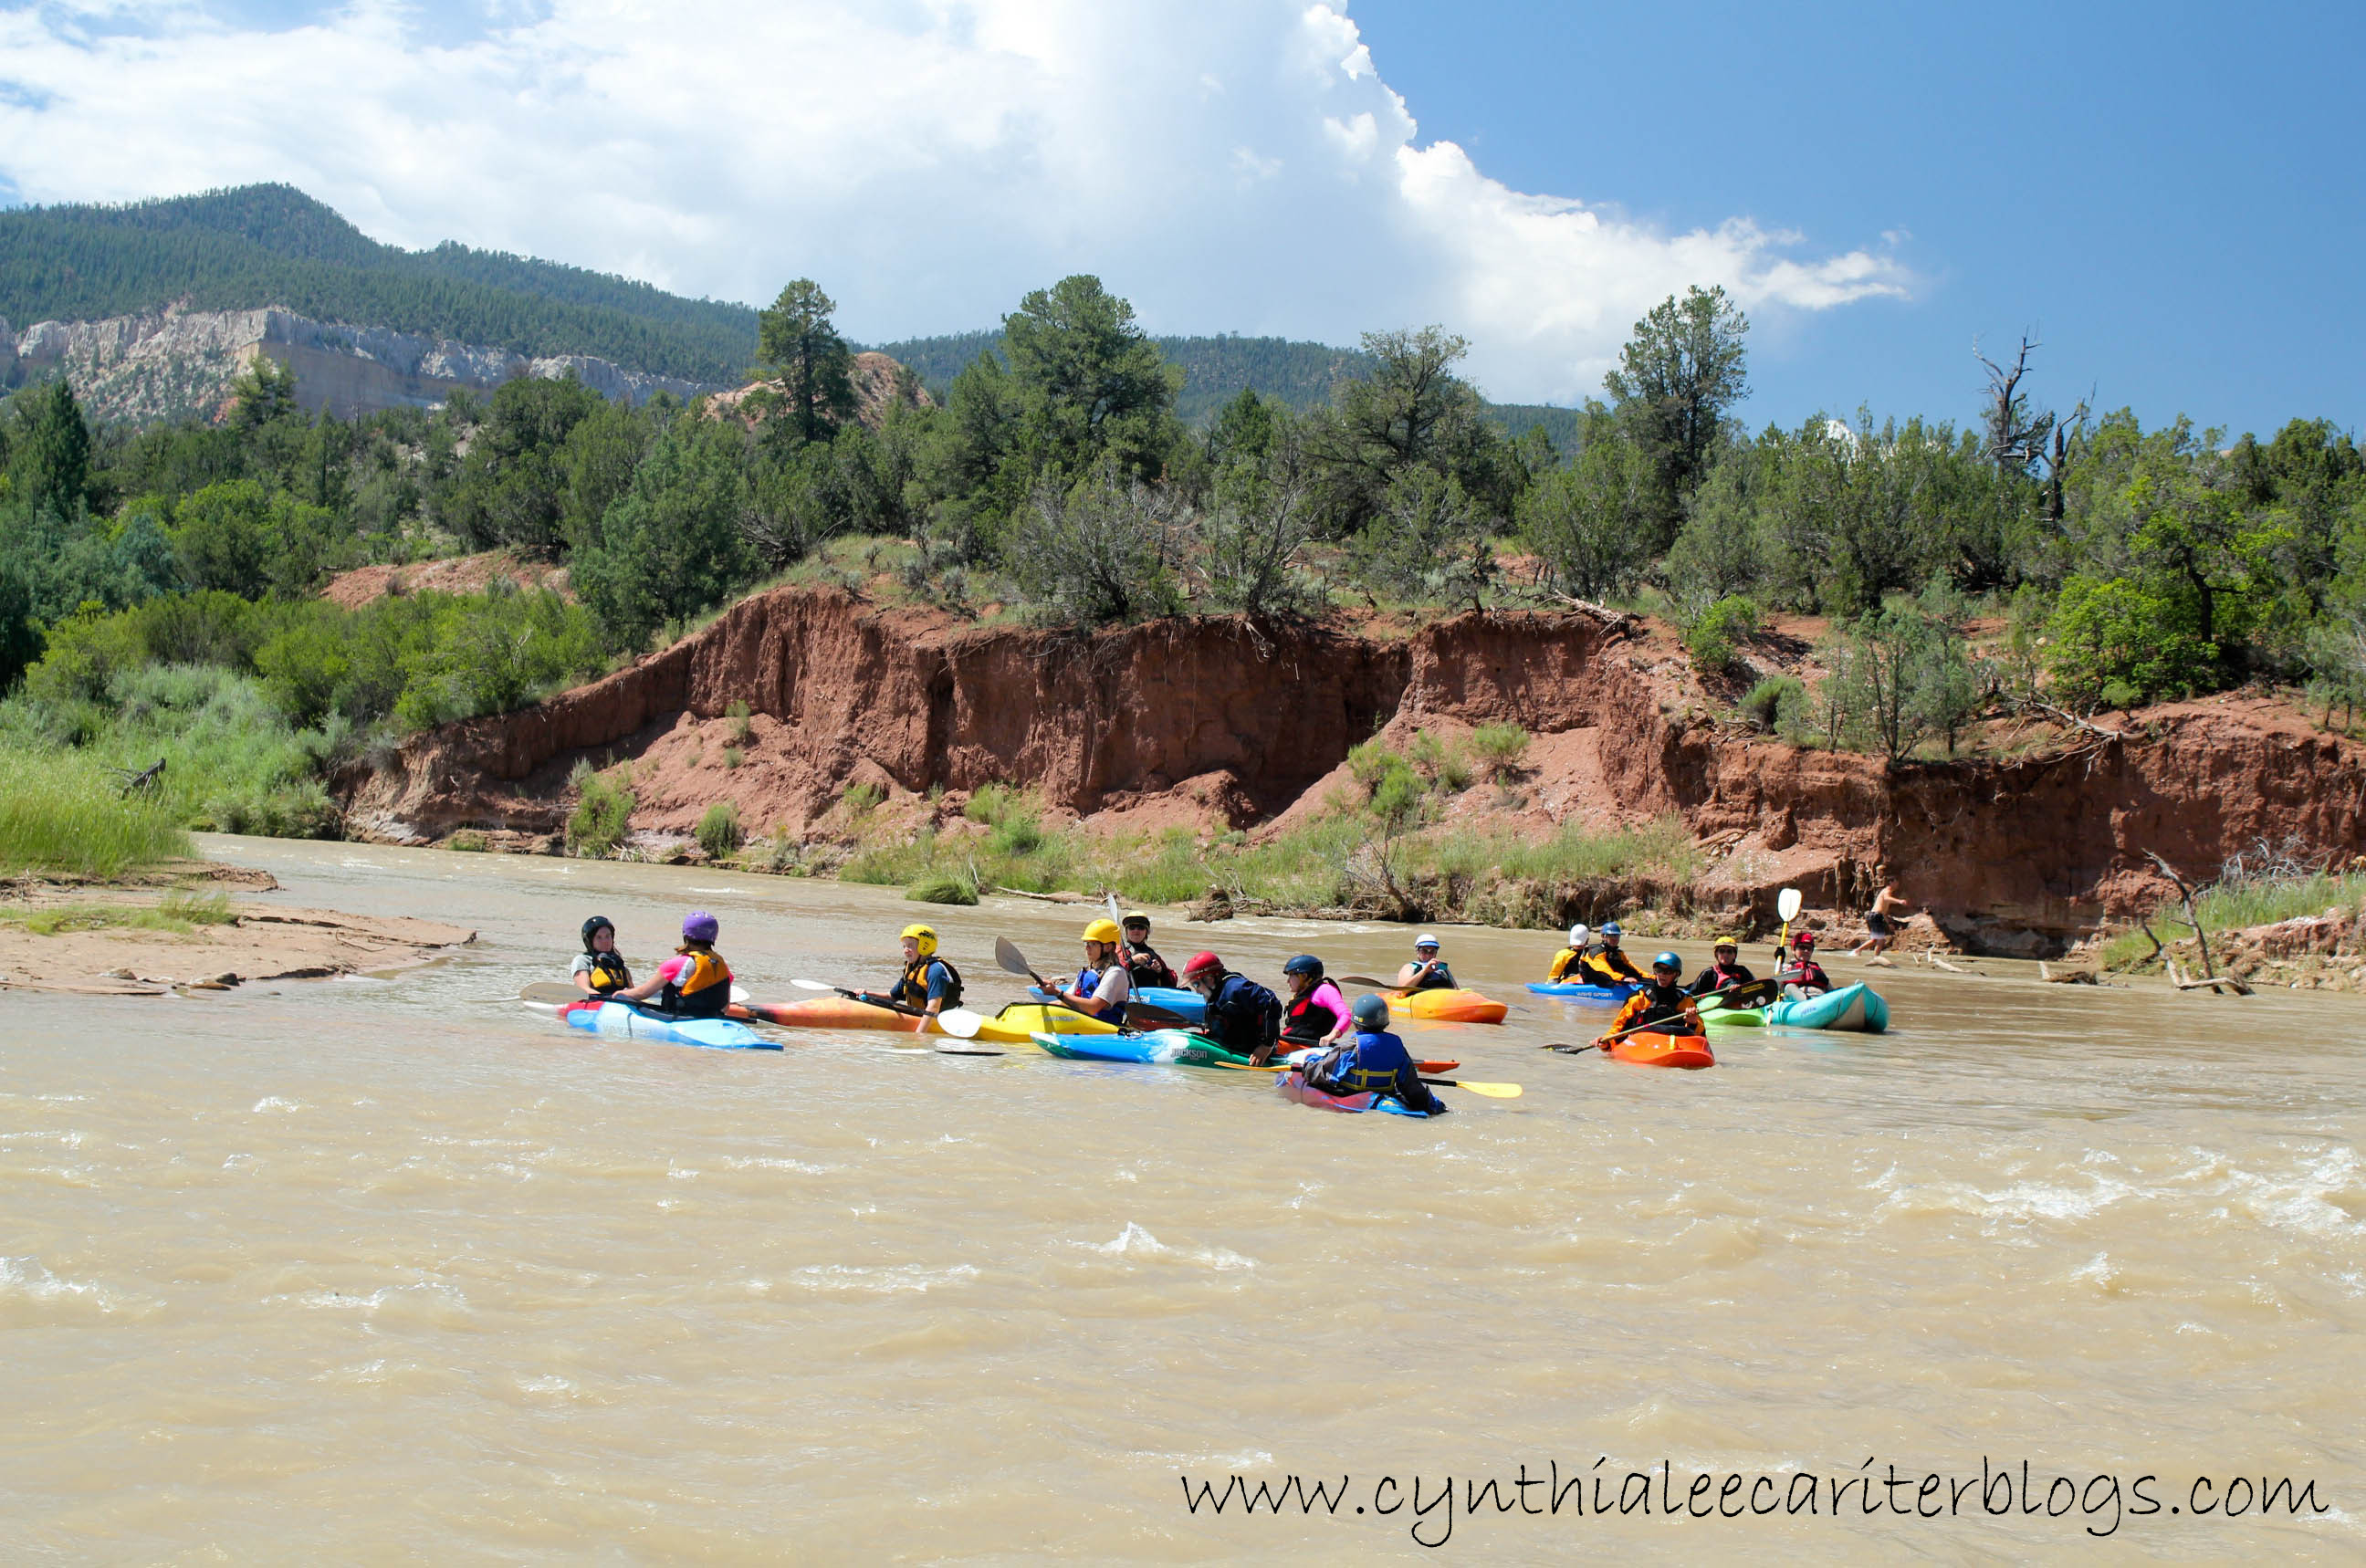 Kayaking group on the Rio Chama in New Mexico